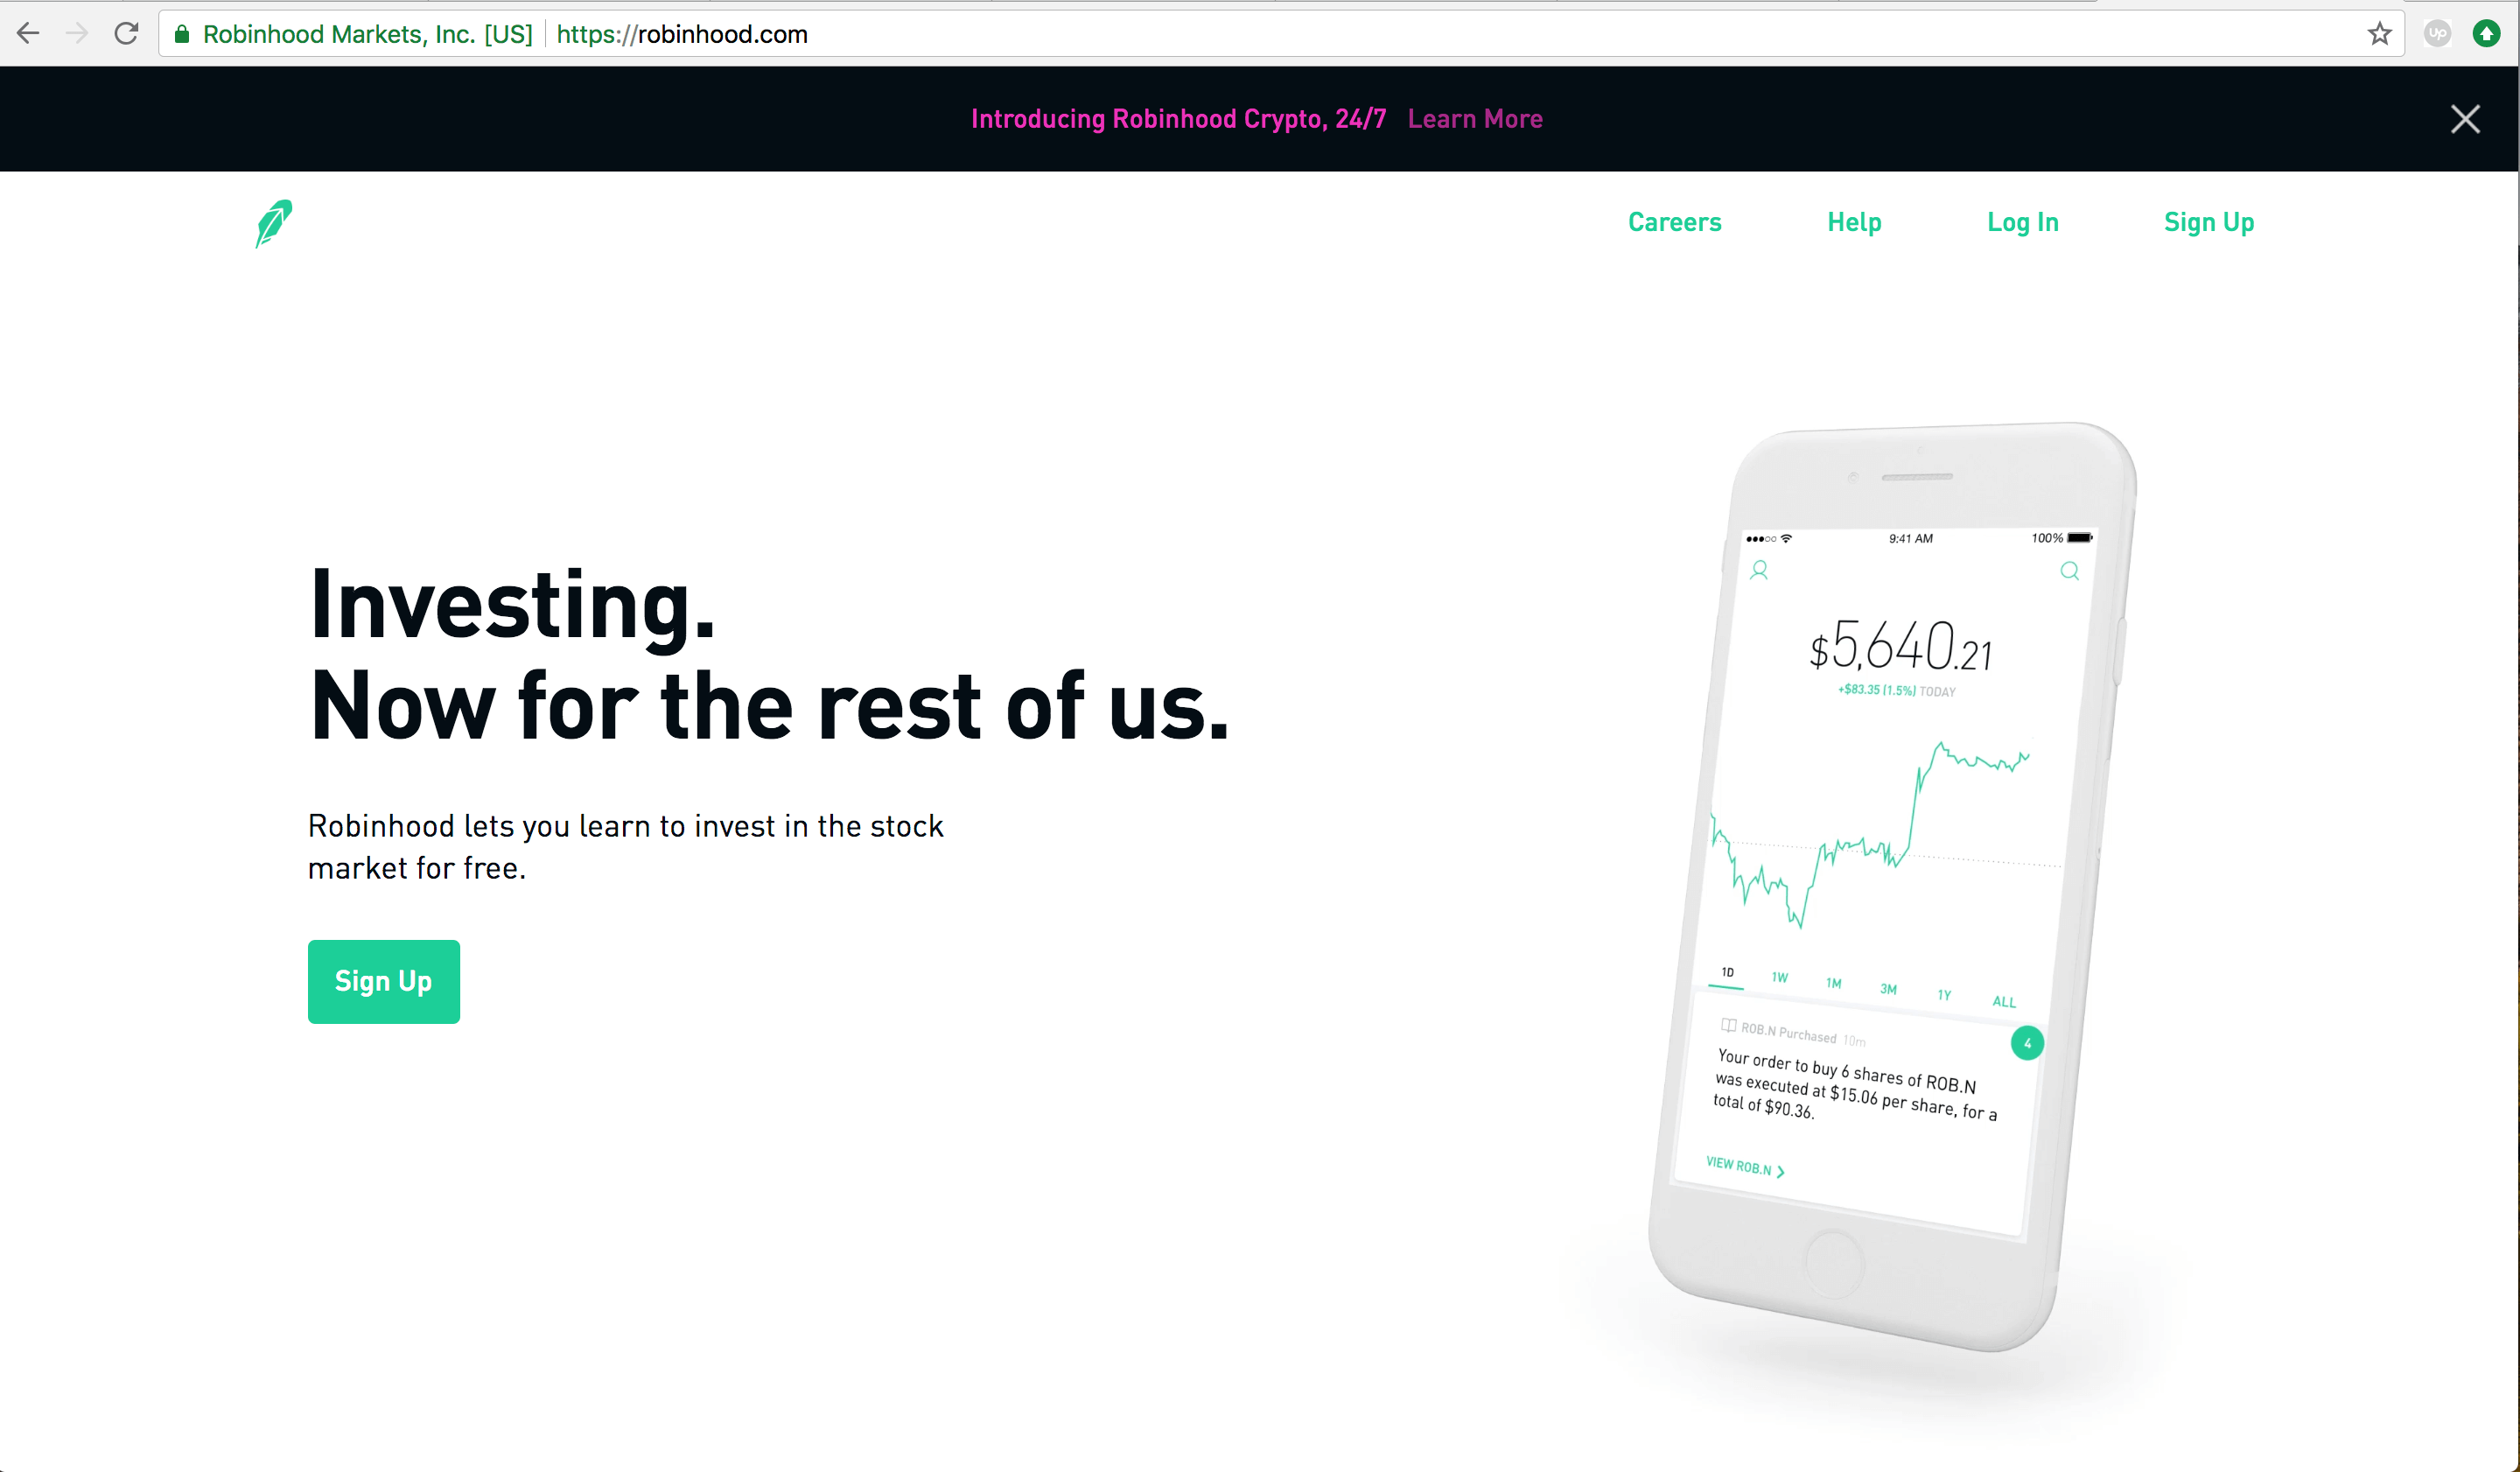 Is It Safe To Give Robinhood Your Ssn